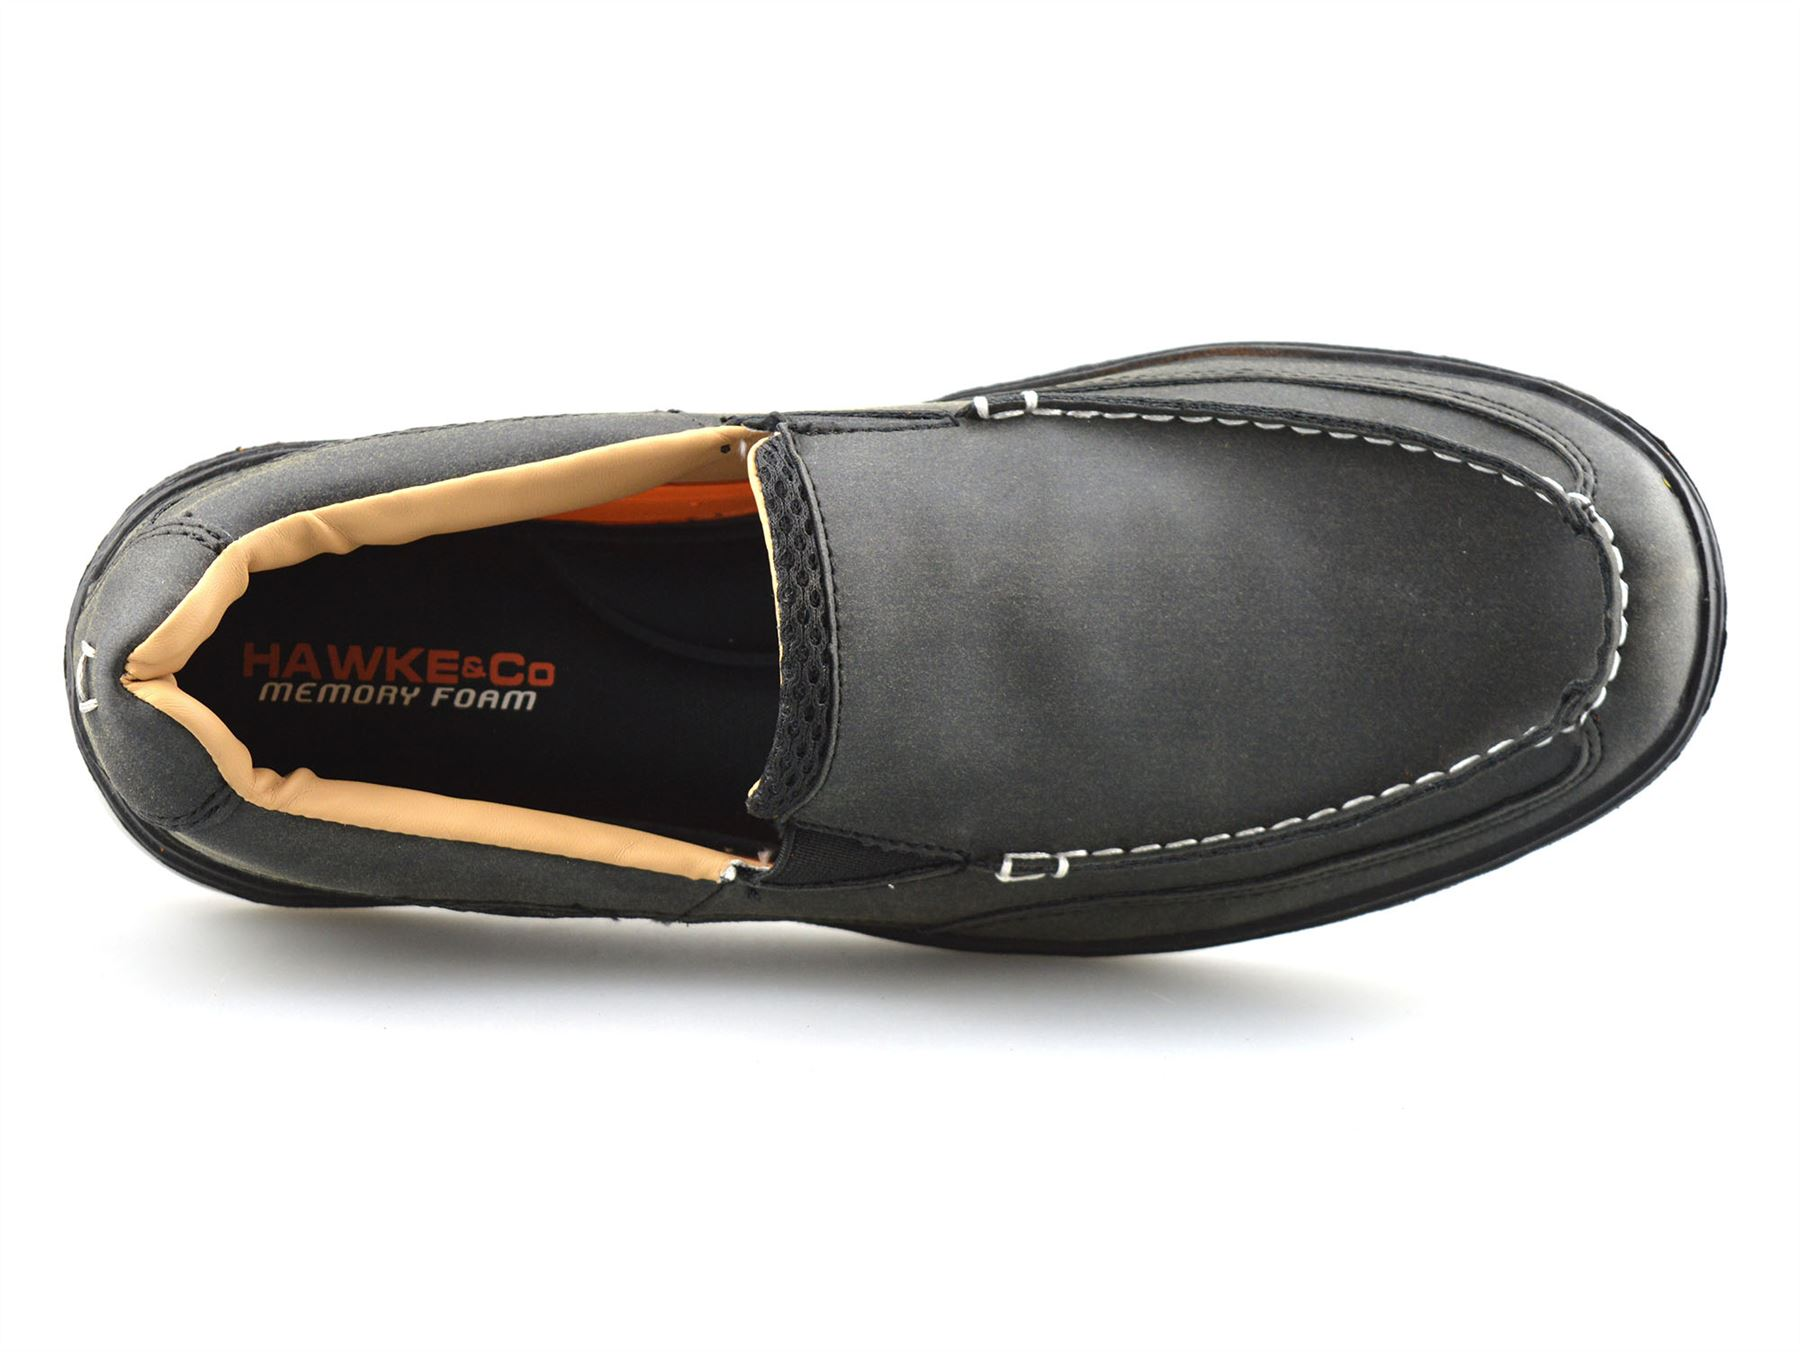 Mens-Casual-Memory-Foam-Slip-On-Walking-Loafers-Moccasin-Driving-Boat-Shoes-Size thumbnail 15